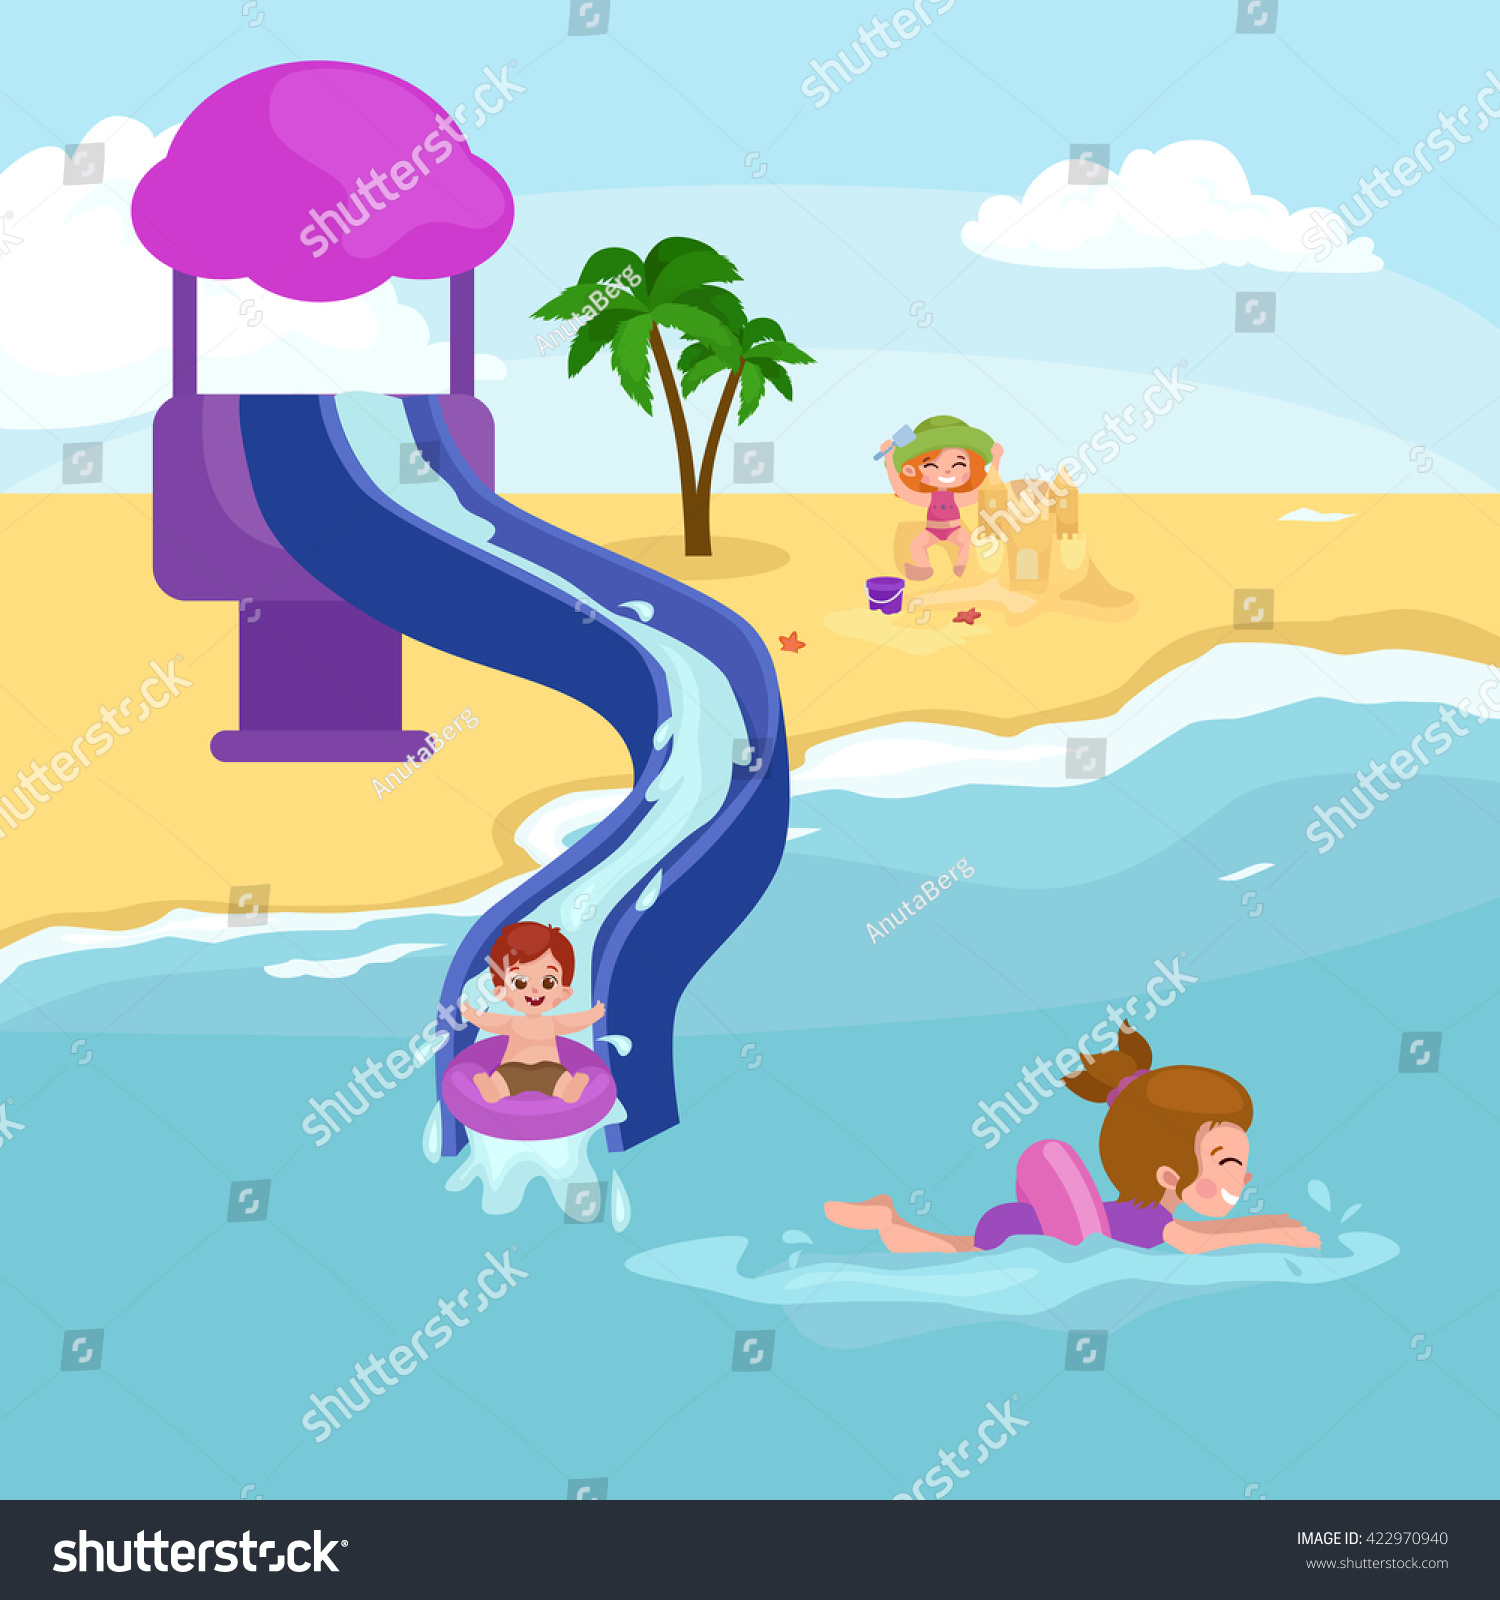 Children summer vacation in park.Kids Playing sand around water on beach slide in sea or ocean vector illustration.Happy kids summer holiday people sunning and swimming play ball have fun vocation